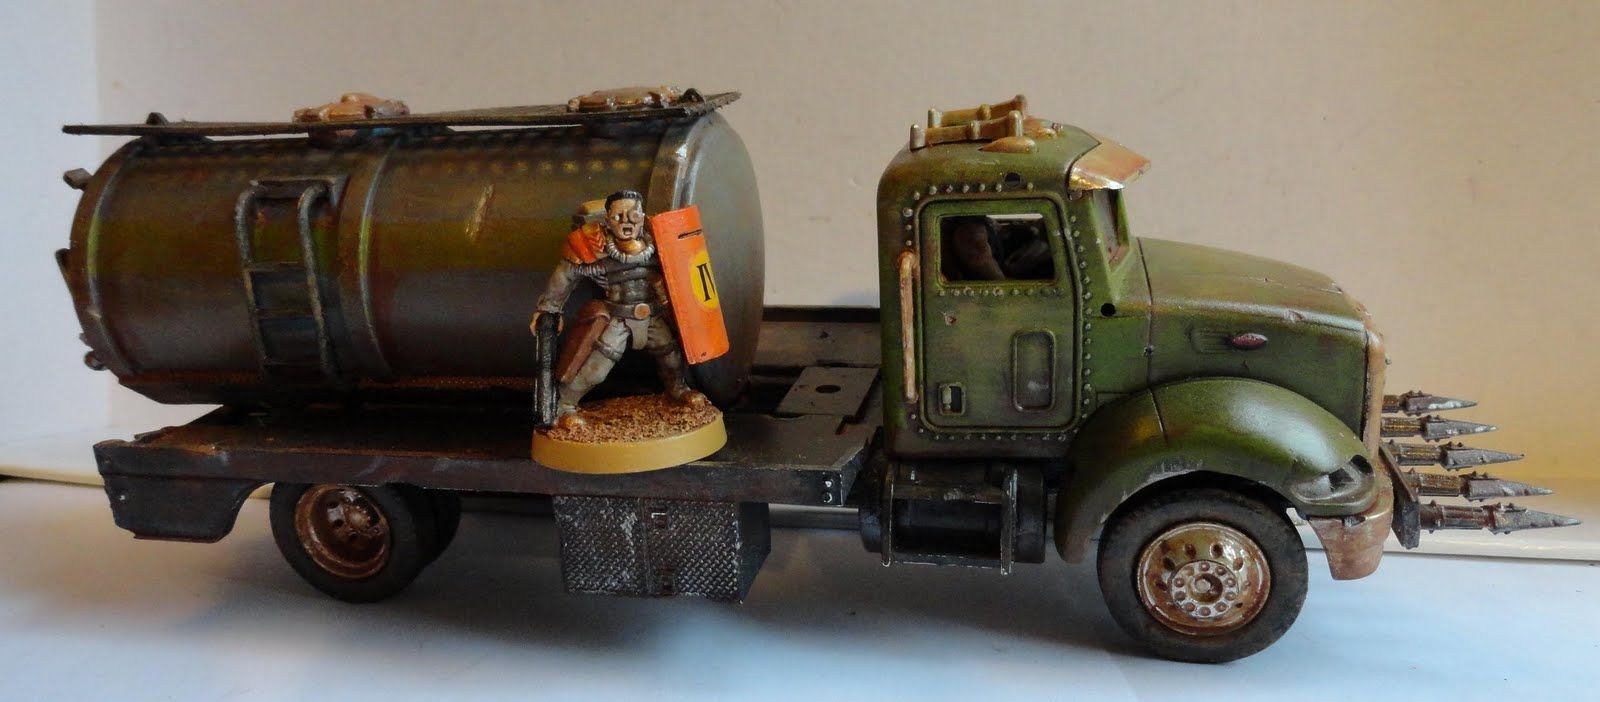 Chicago skirmish wargames 28mm on the cheap post apocalyptic vehicles before and